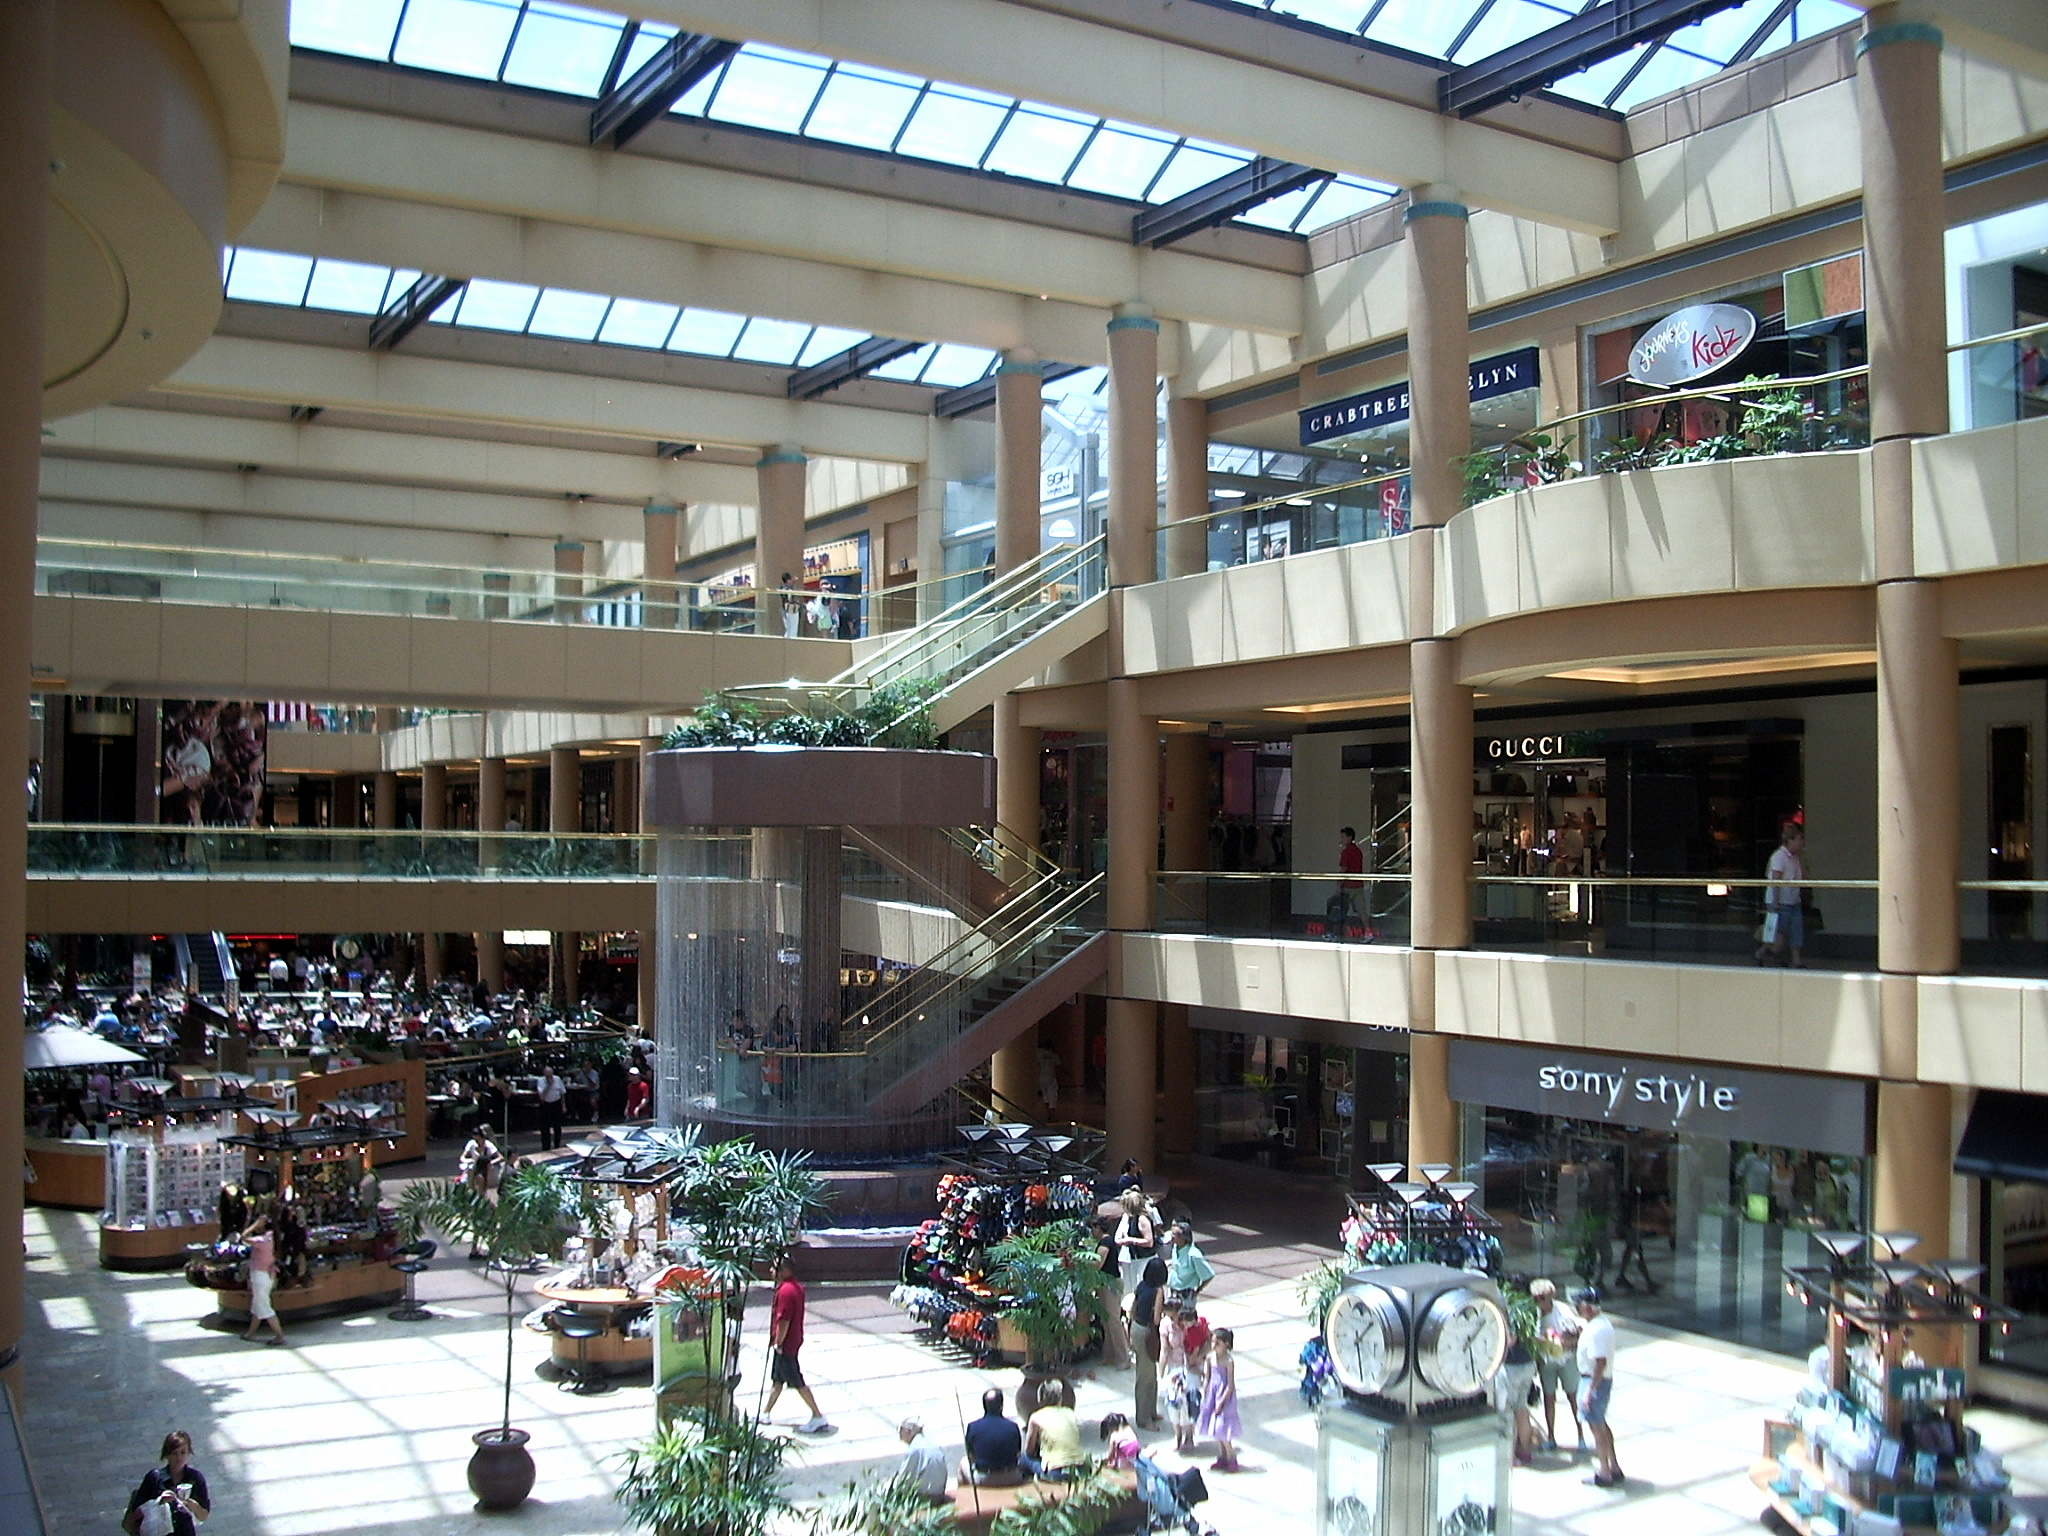 Restaurants In Ft Lauderdale Restaurant Guide - A Pompano fashion square mall directory